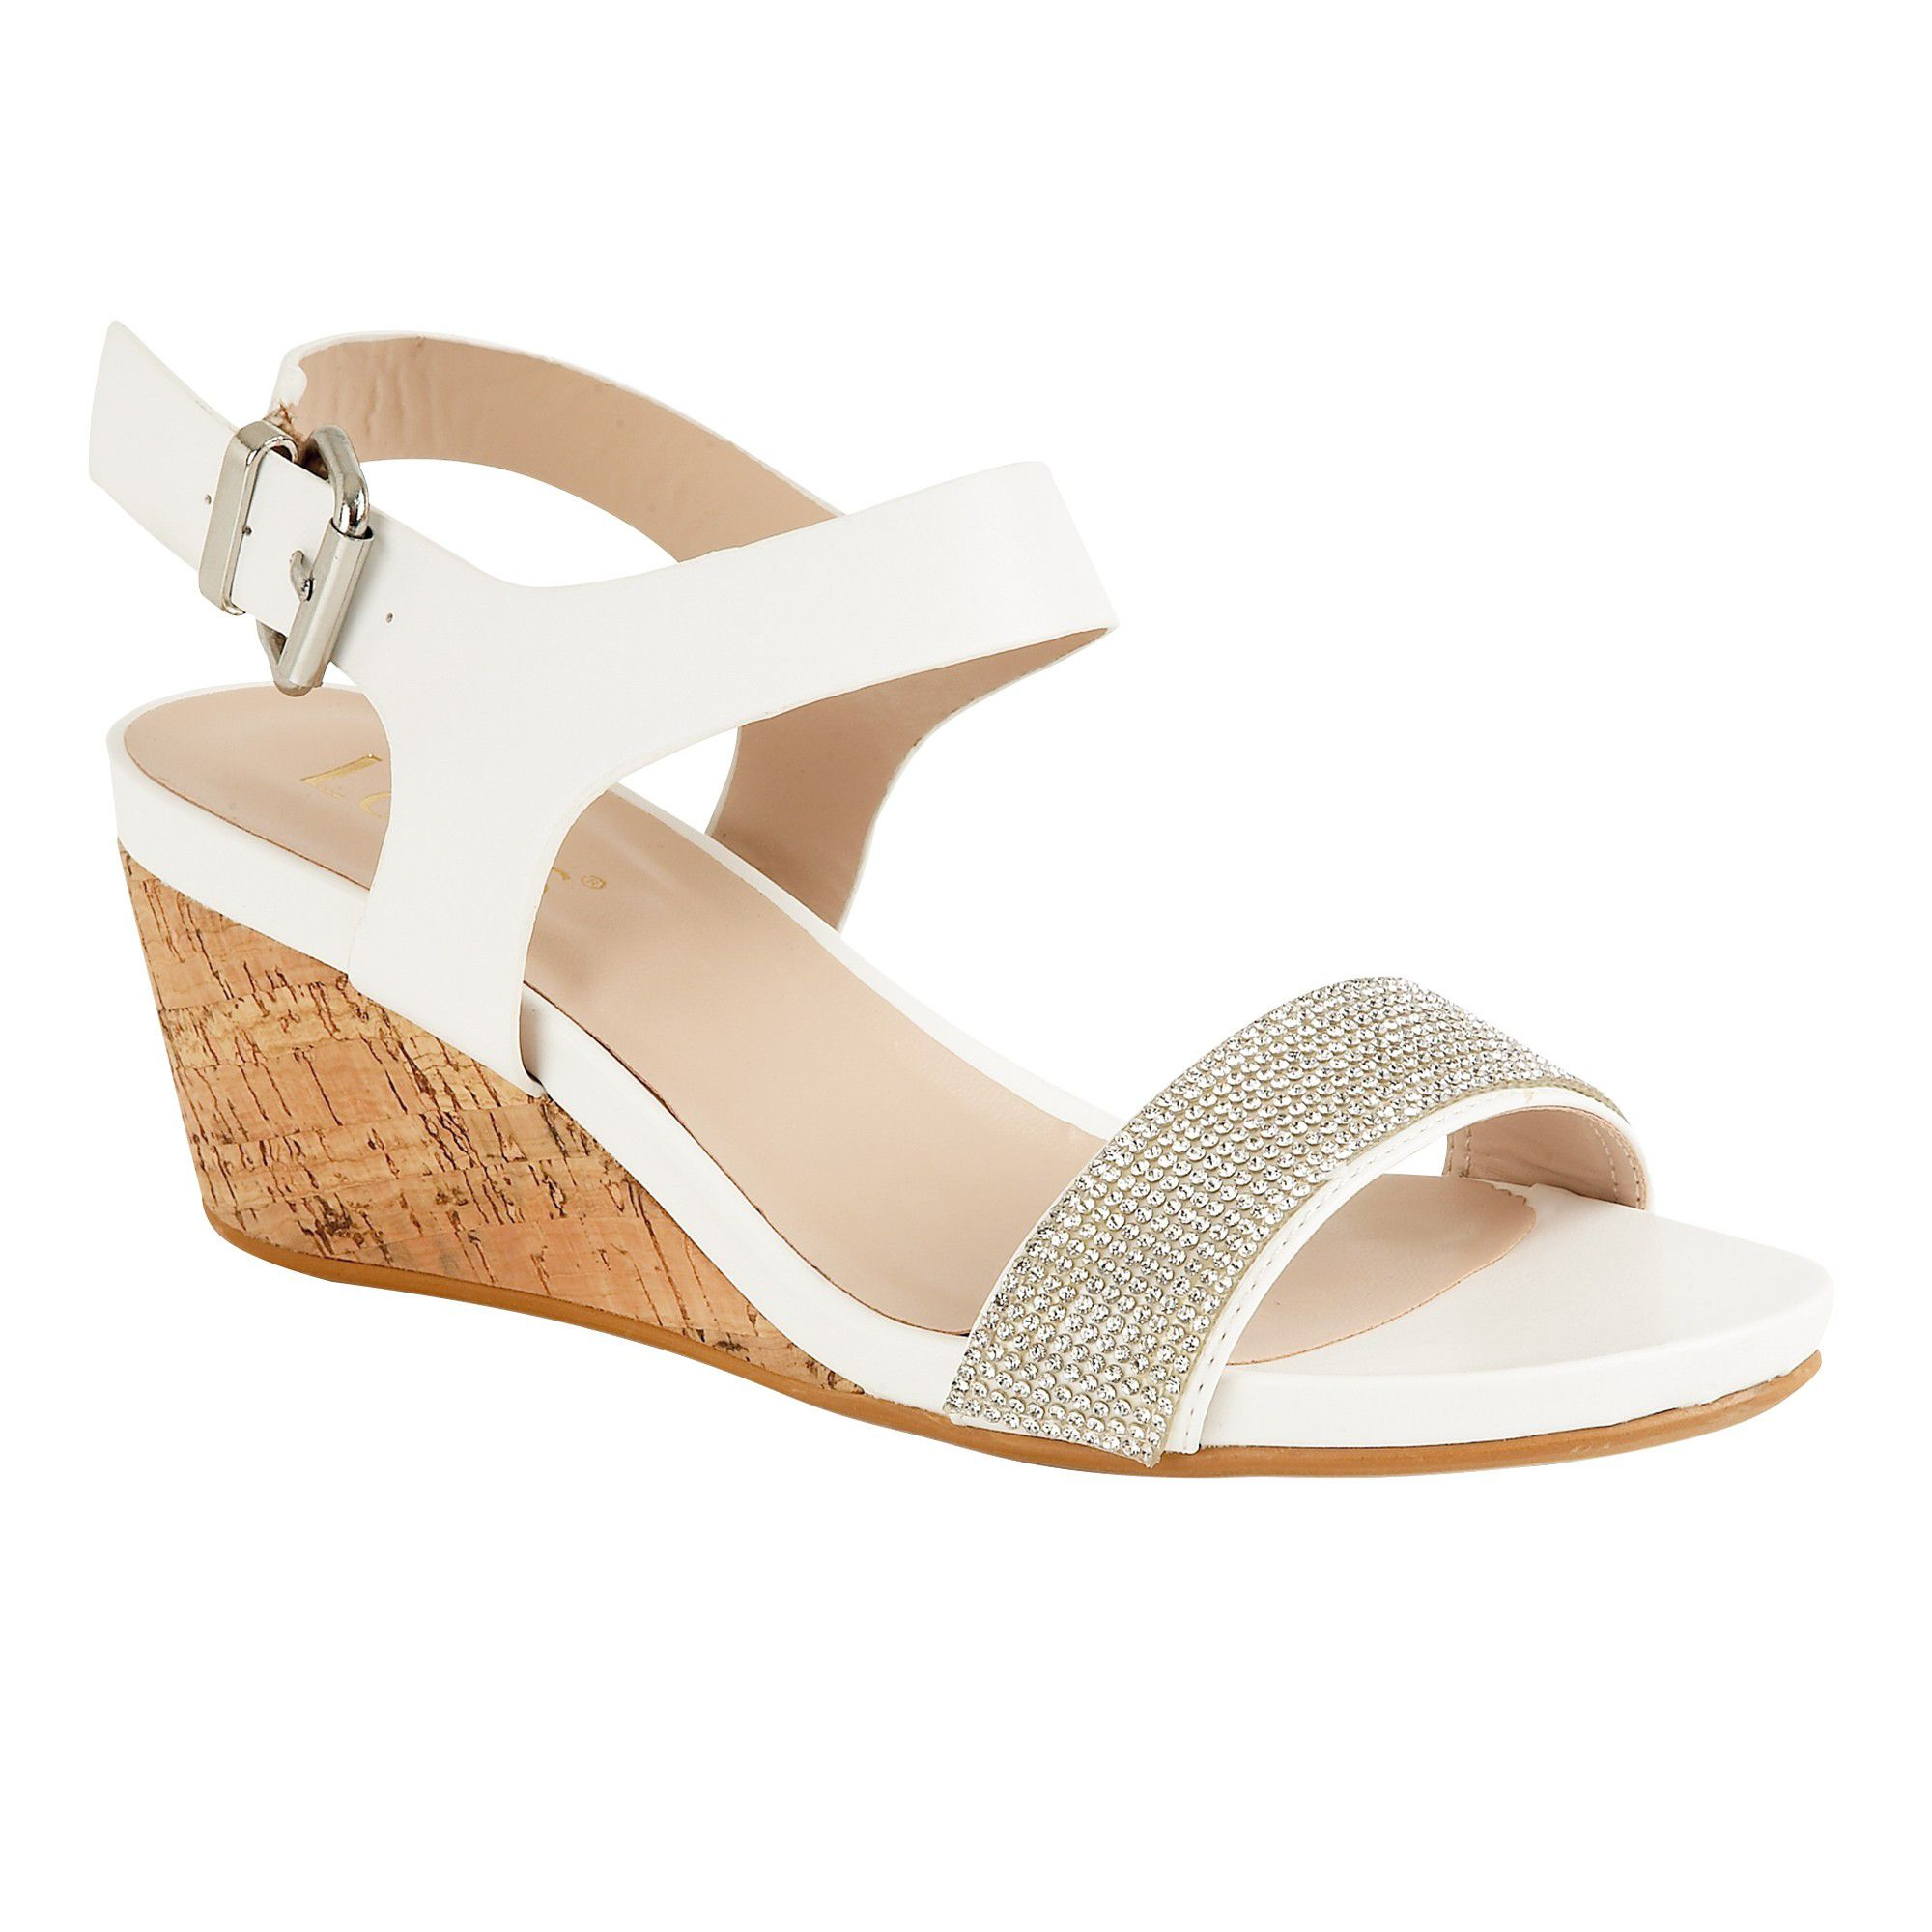 Lotus Ace Wedge Sandals, White